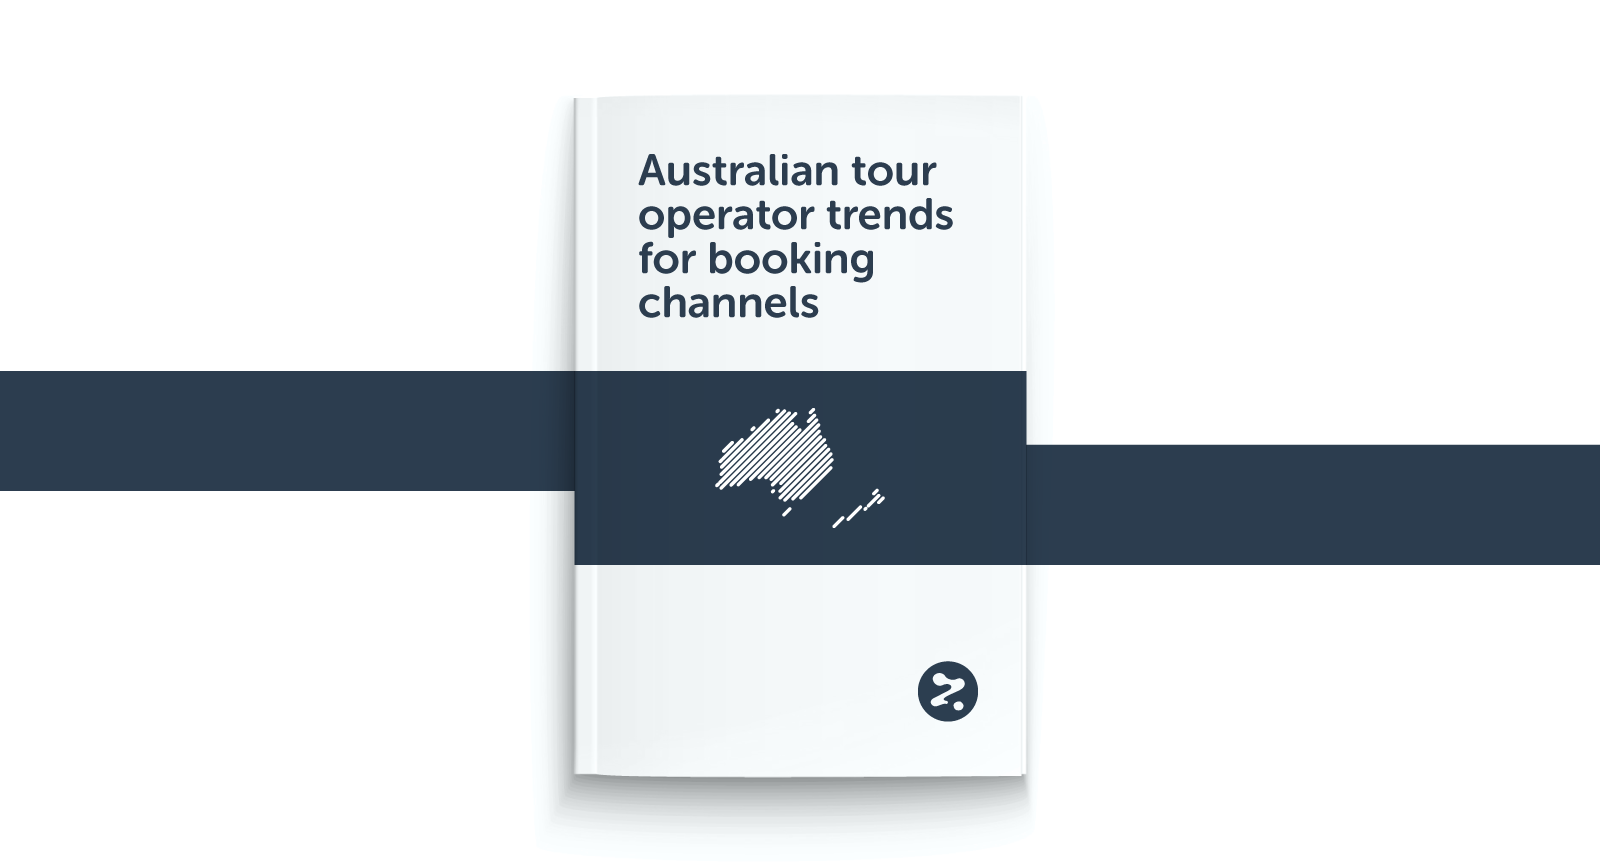 Australian Tour Operator Trends for Booking Channels